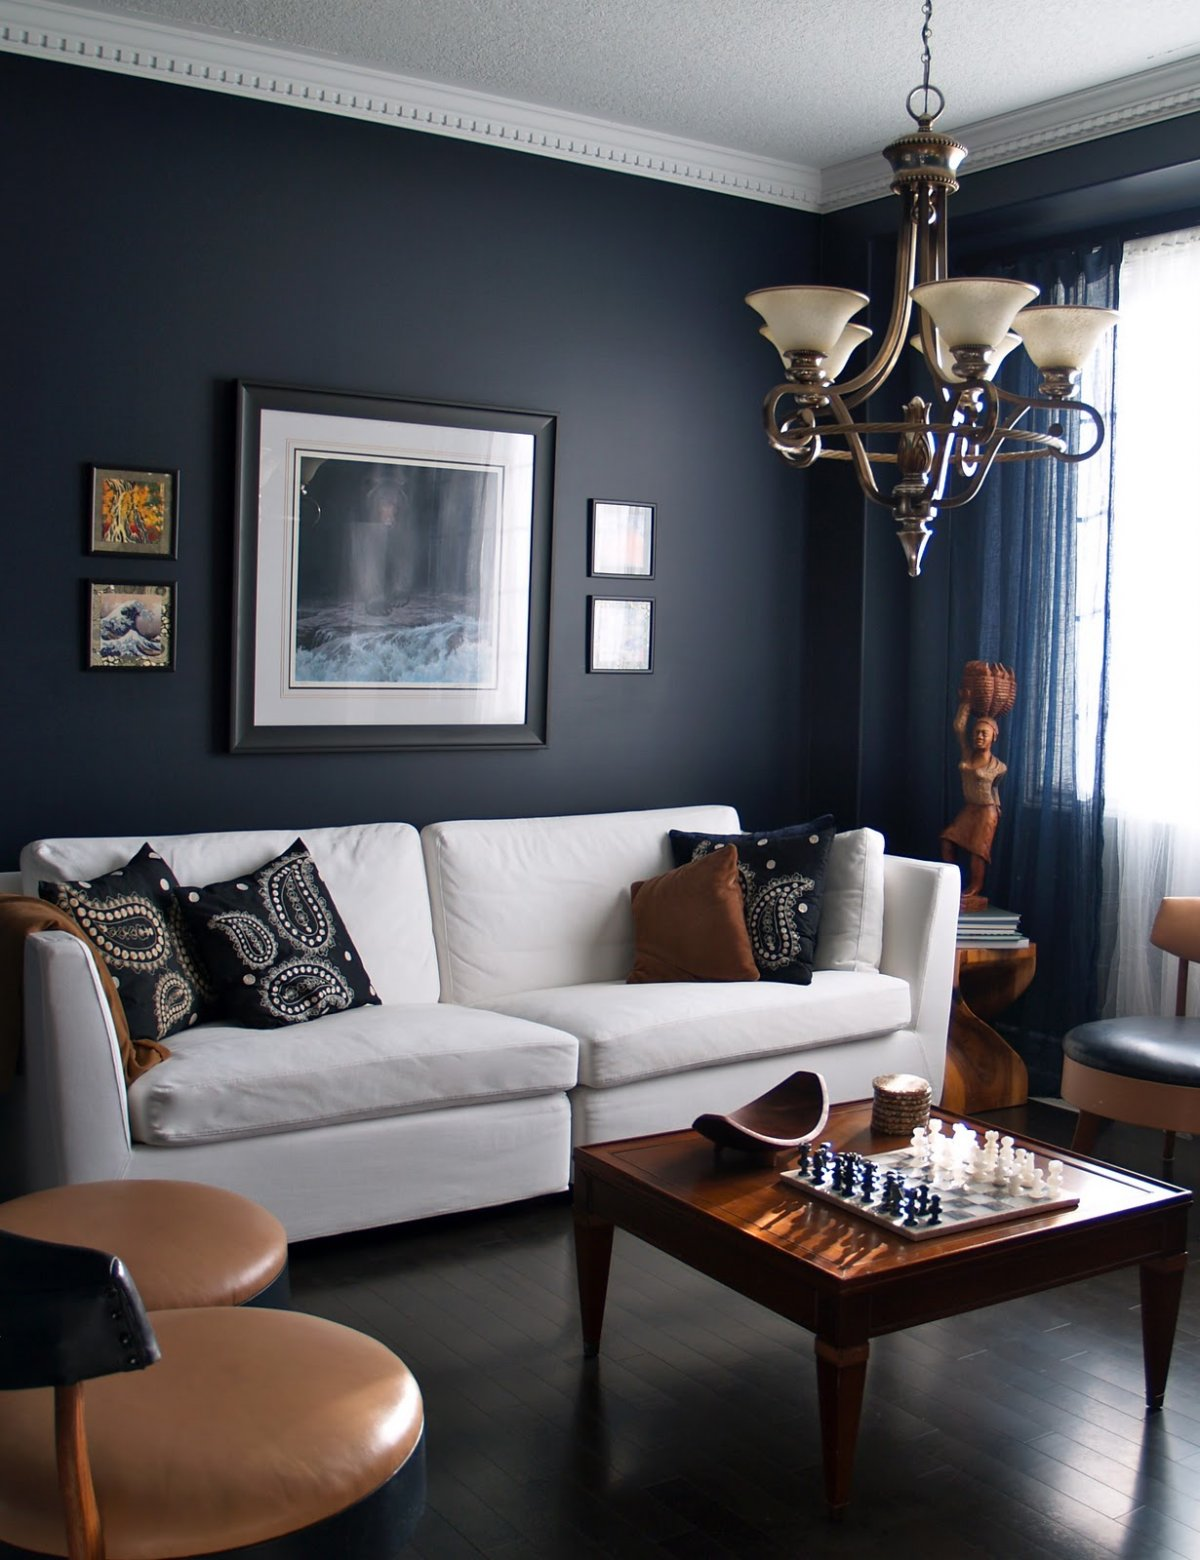 Design Of Furniture For Living Room: 15 Beautiful Dark Blue Wall Design Ideas